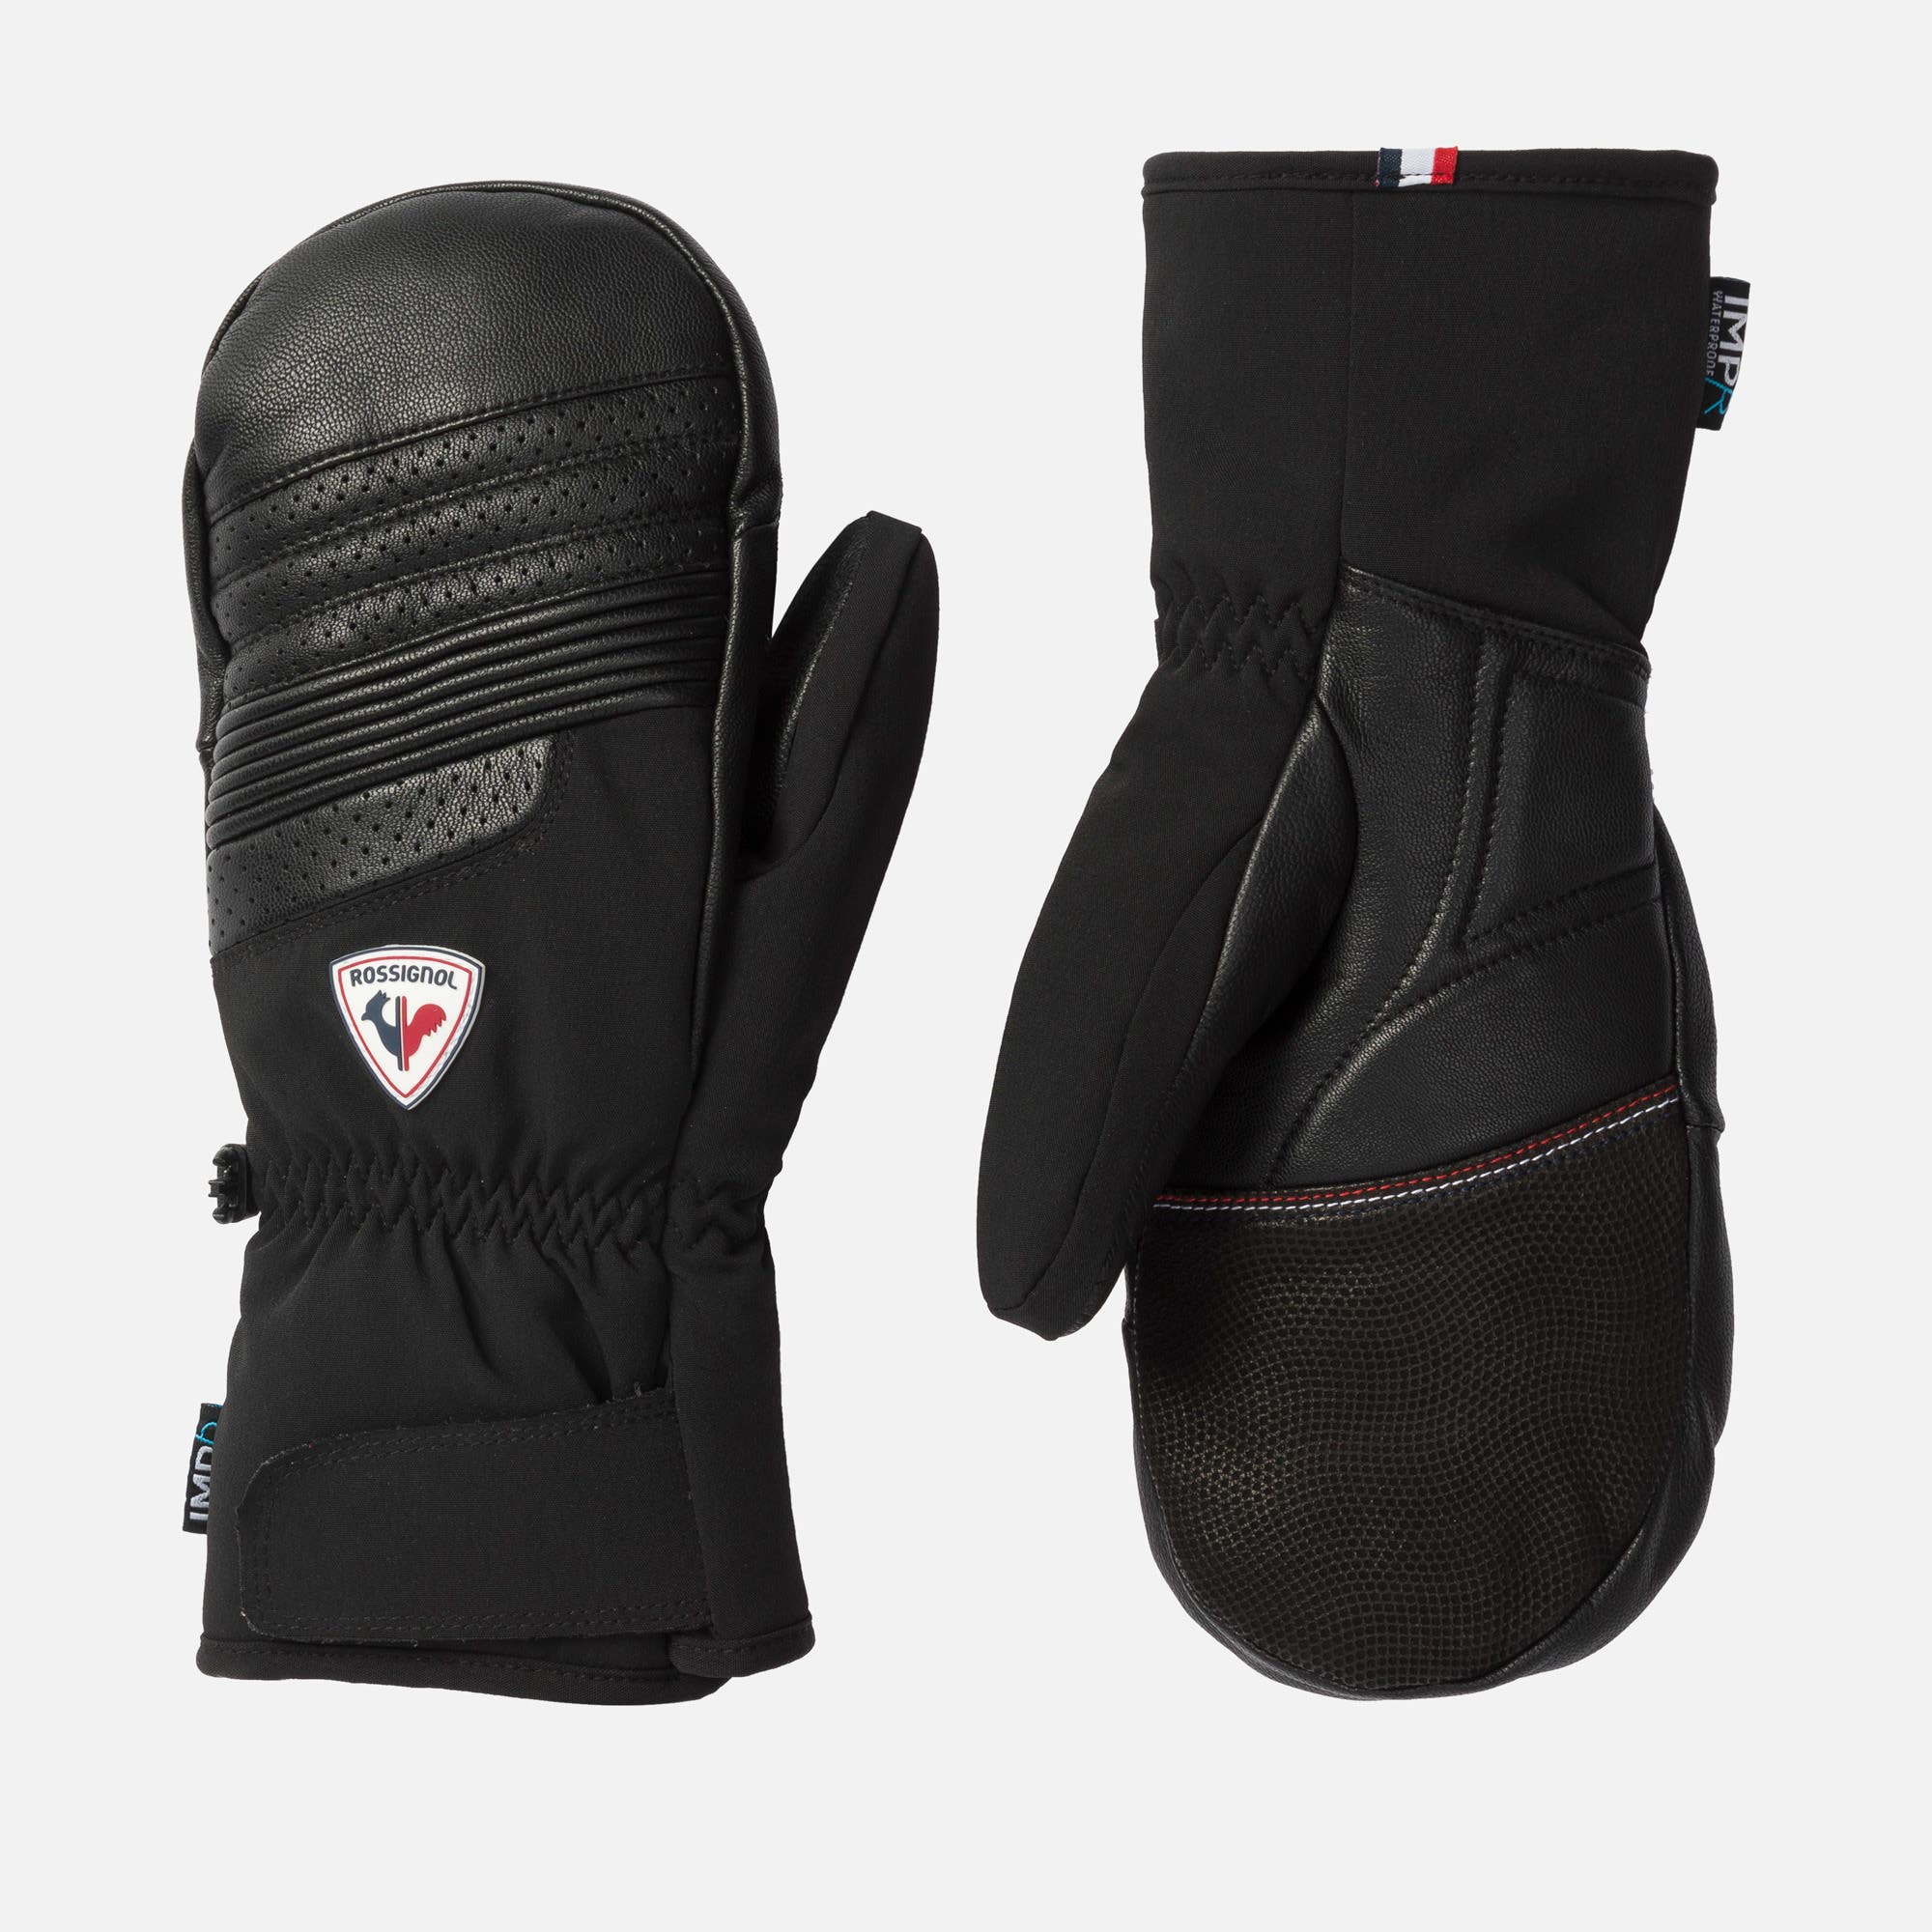 Image of Men's Concept Leather IMPR Mittens